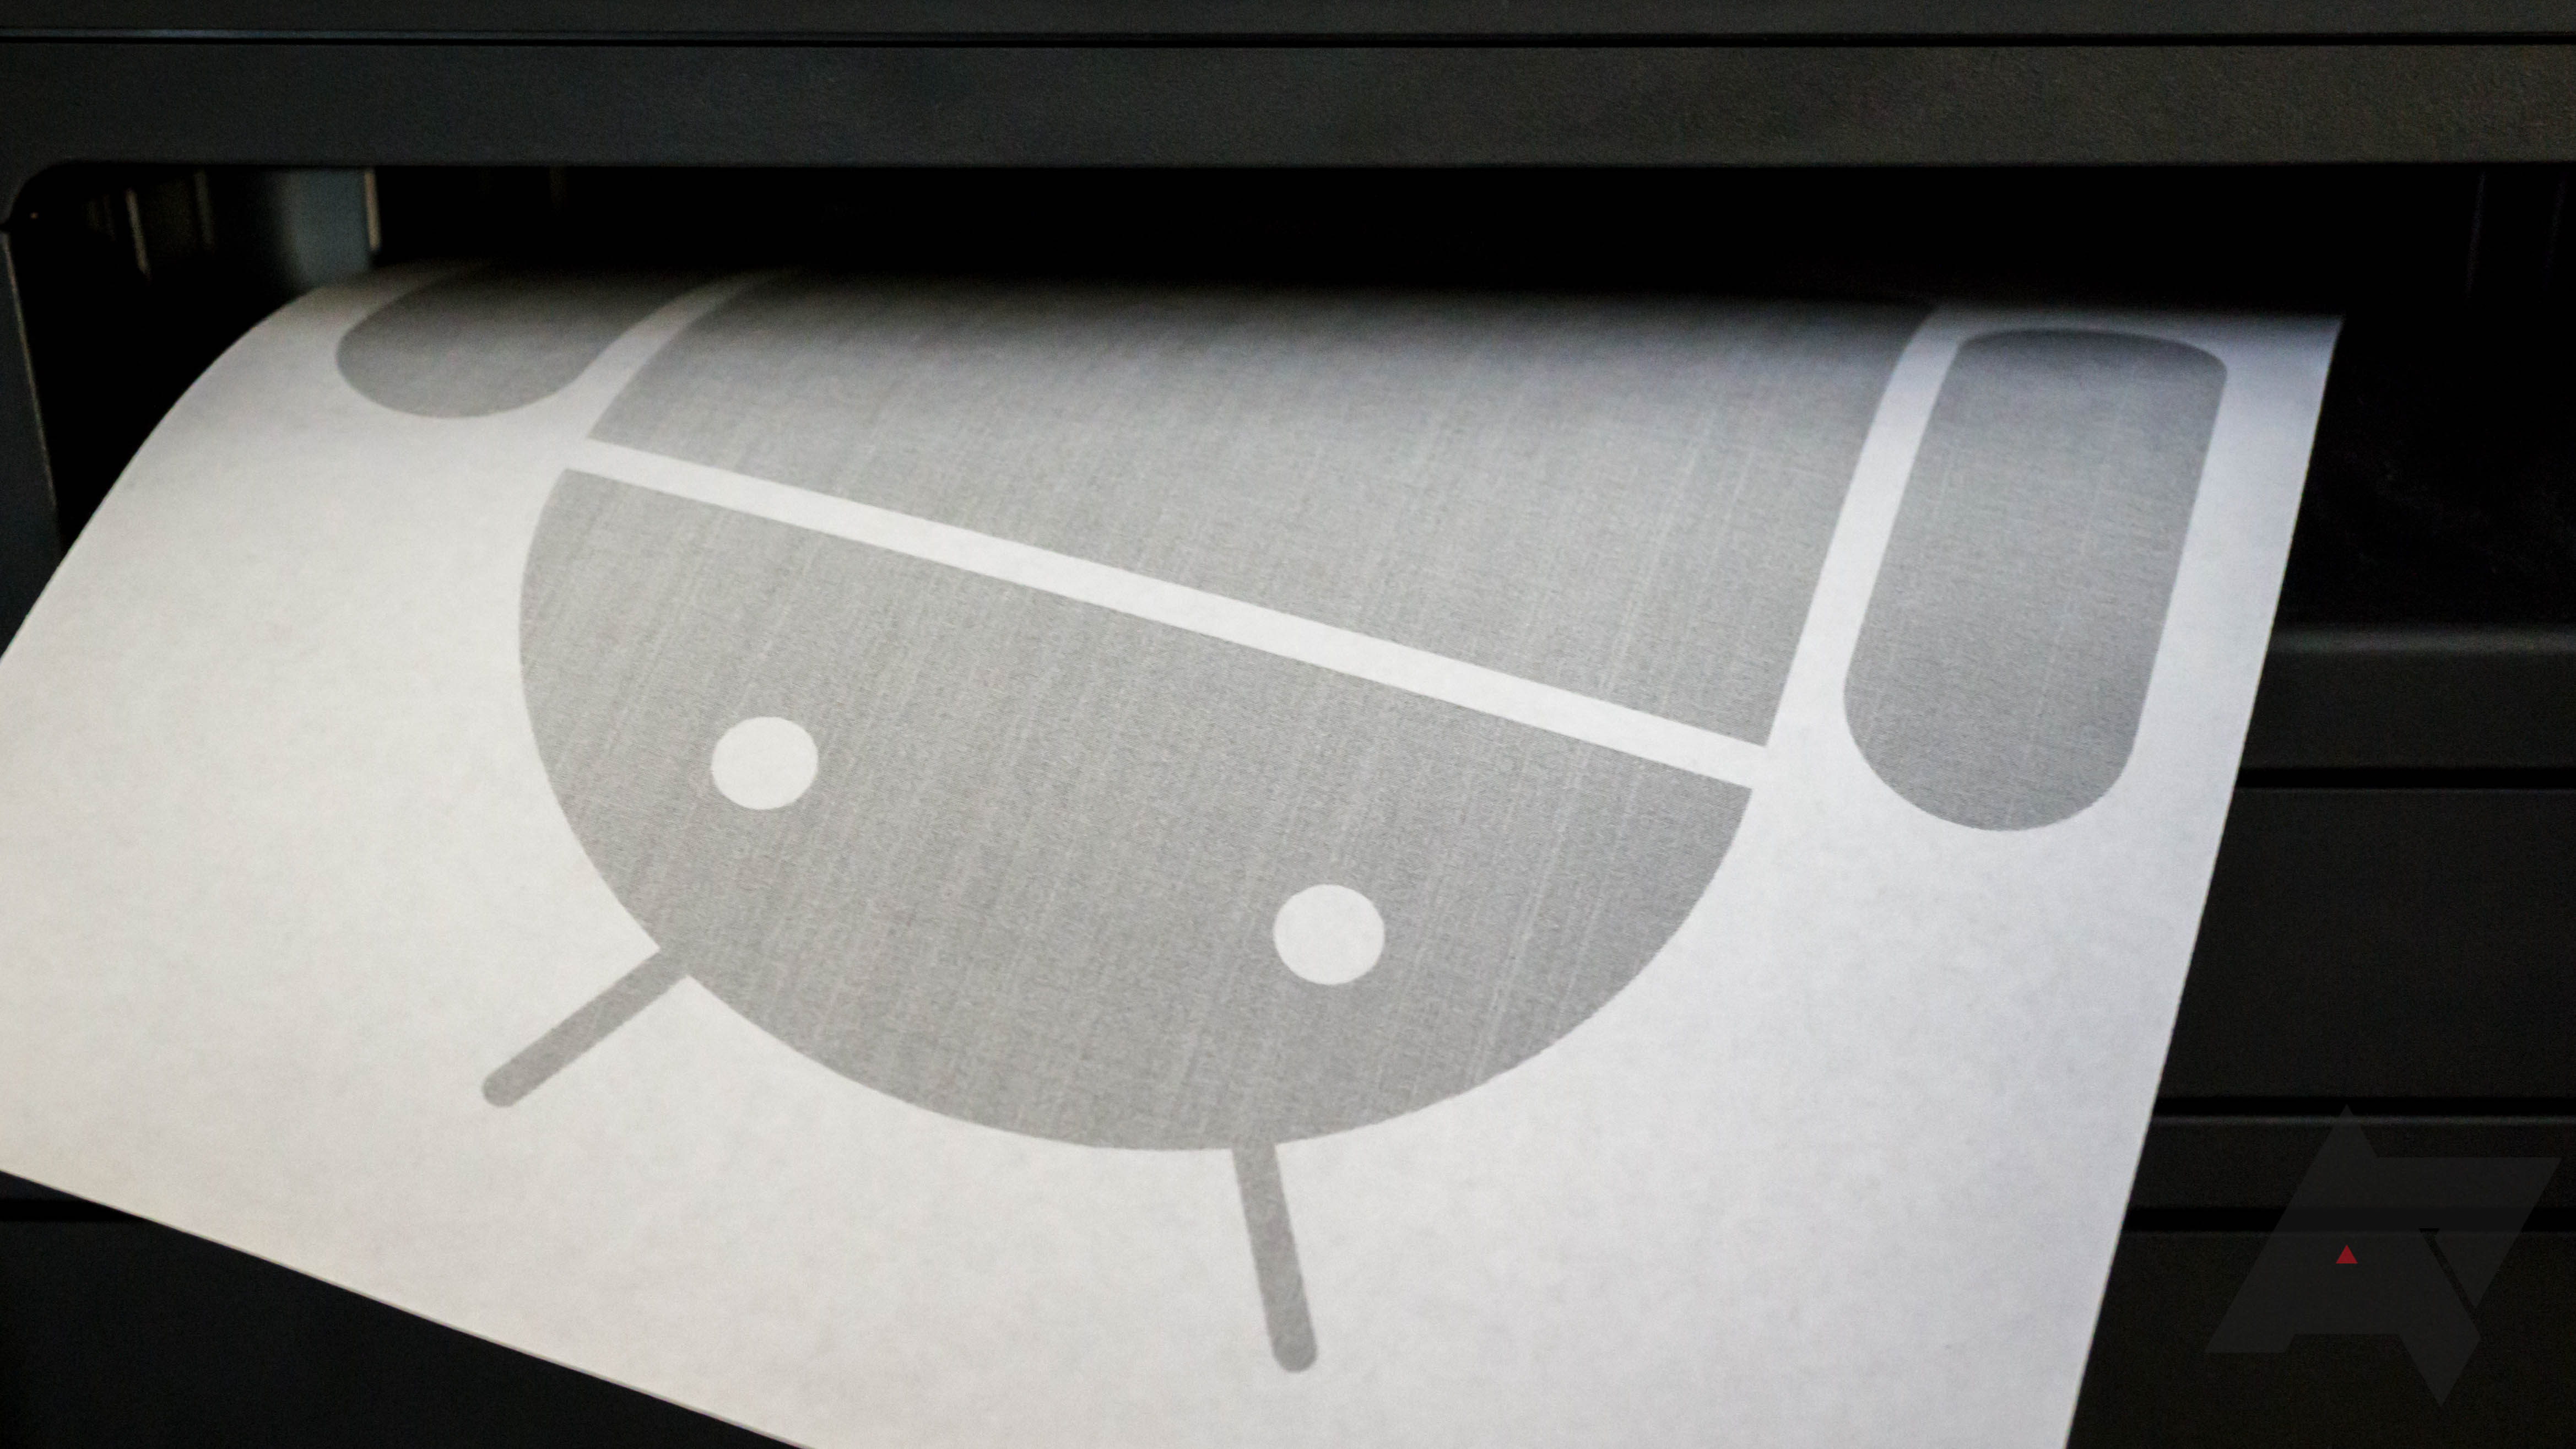 Android 9 Pie adds support for Wi-Fi Direct printing